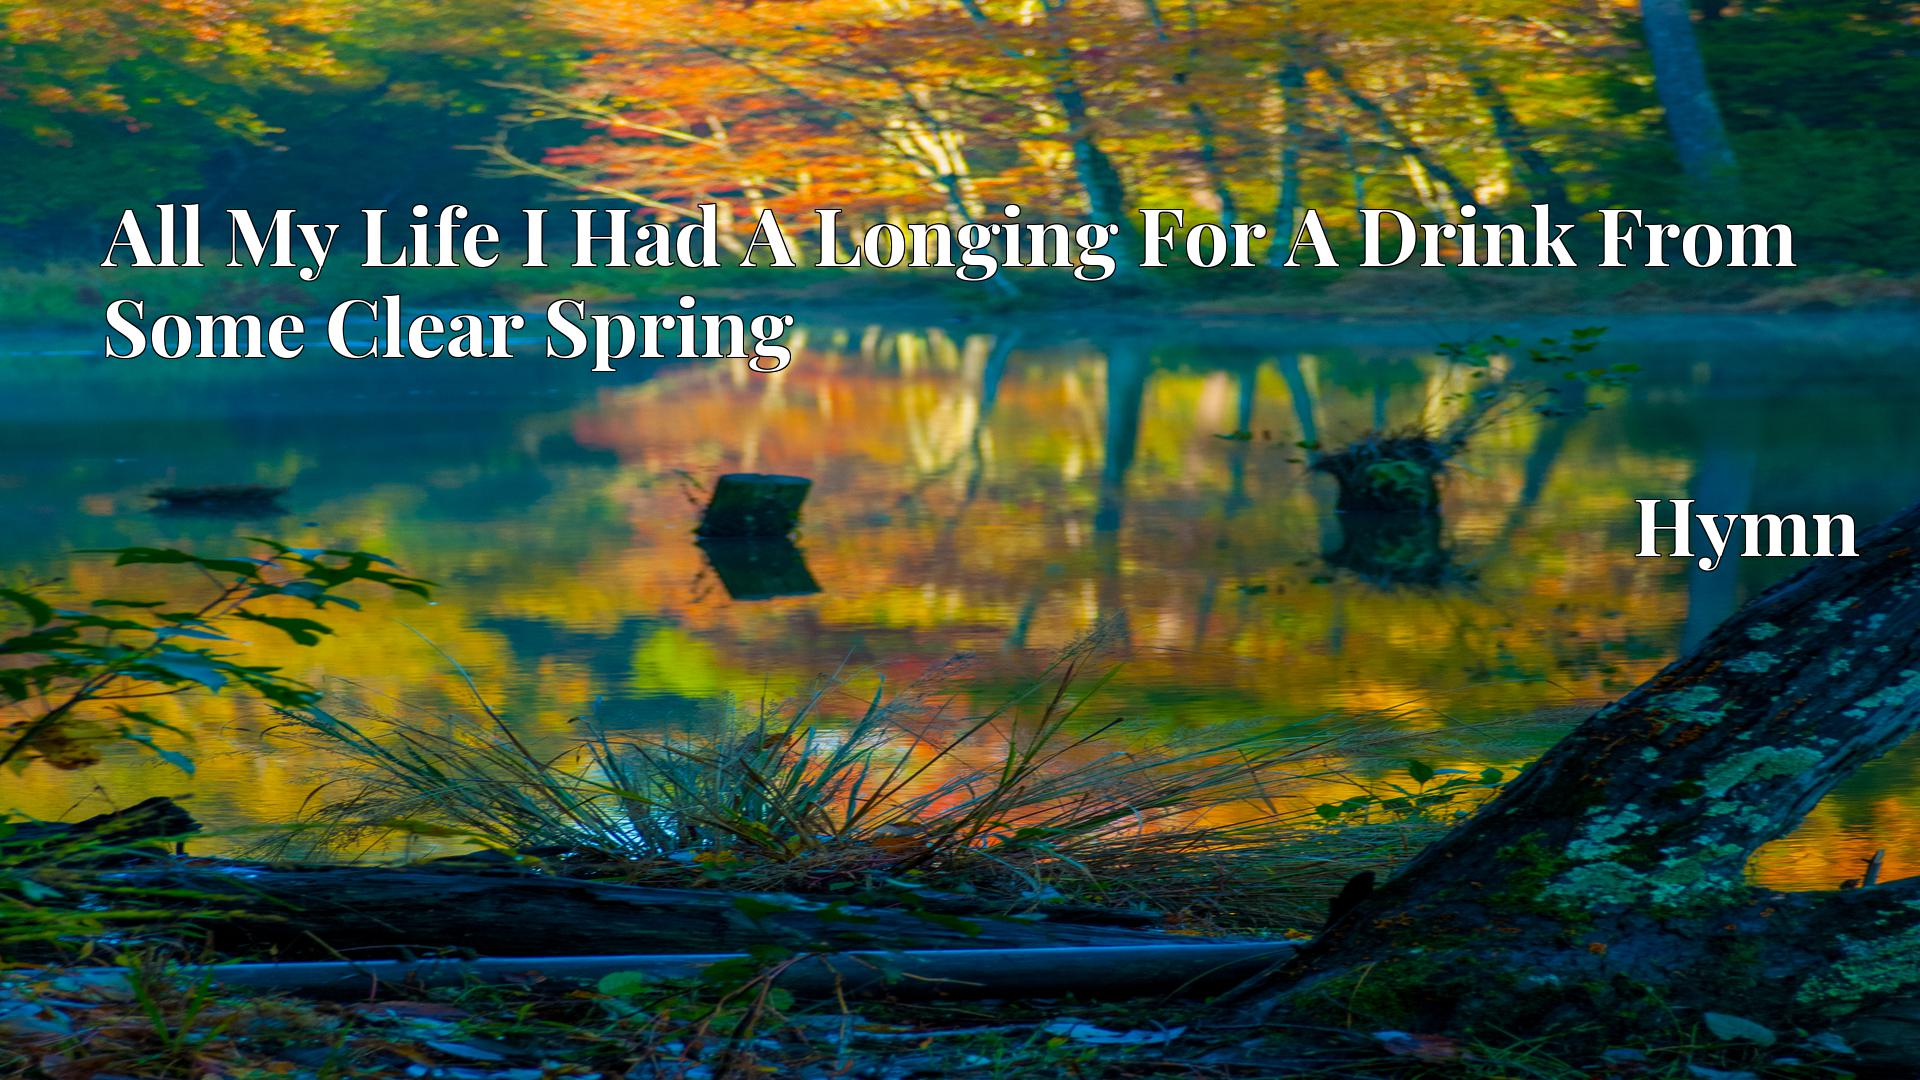 All My Life I Had A Longing For A Drink From Some Clear Spring - Hymn